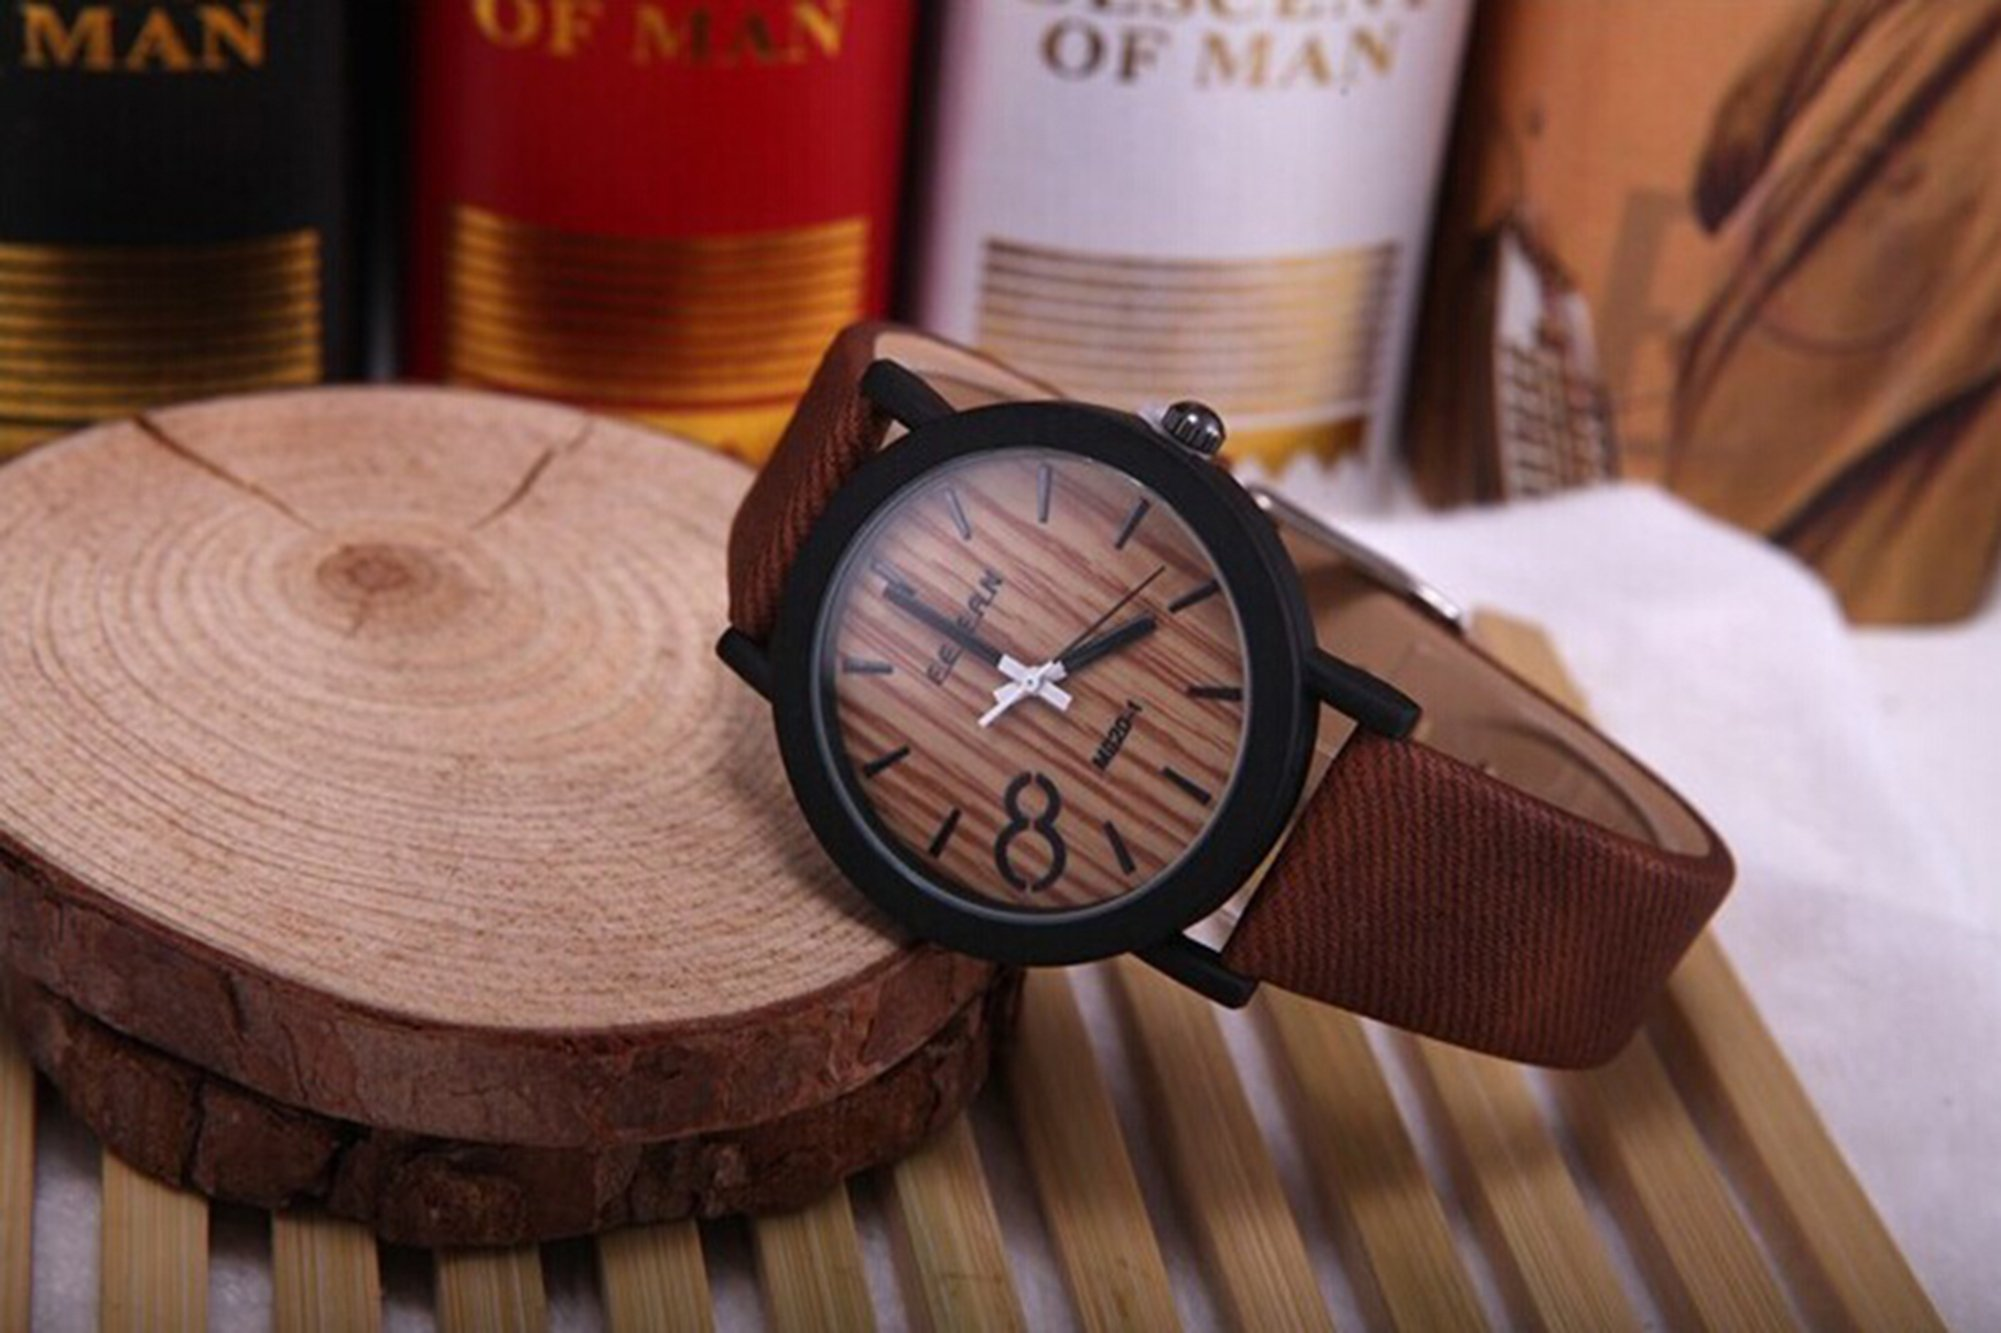 A wooden watch looks elegant but costs less than 10 dollars.